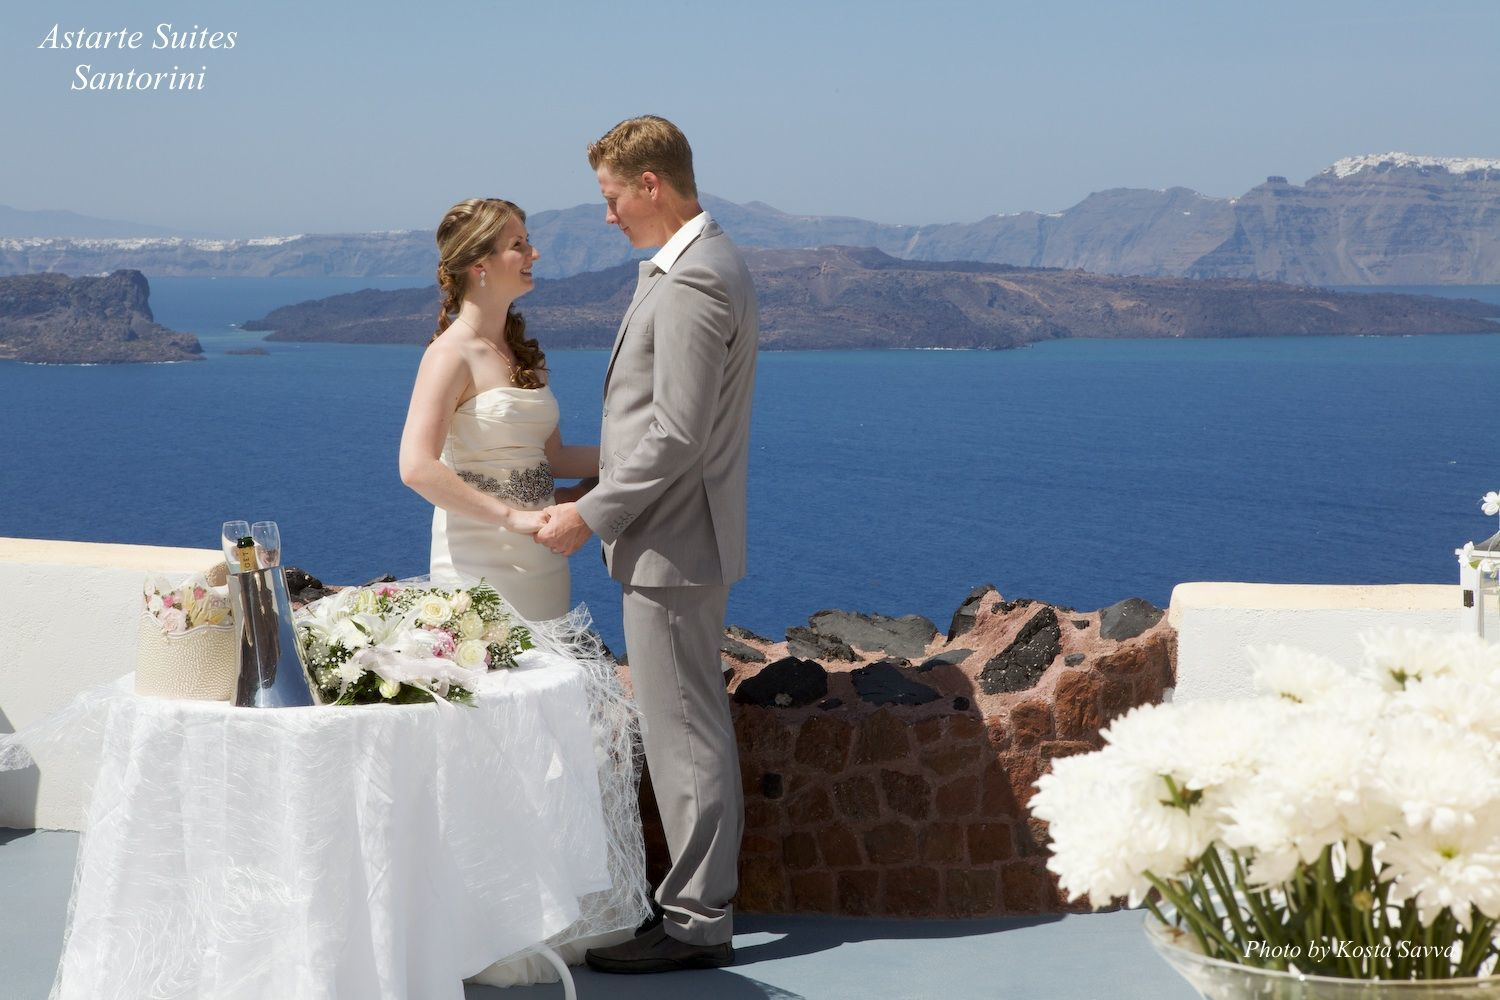 Astarte_Suites_in_Santorini_Weddings_5_2